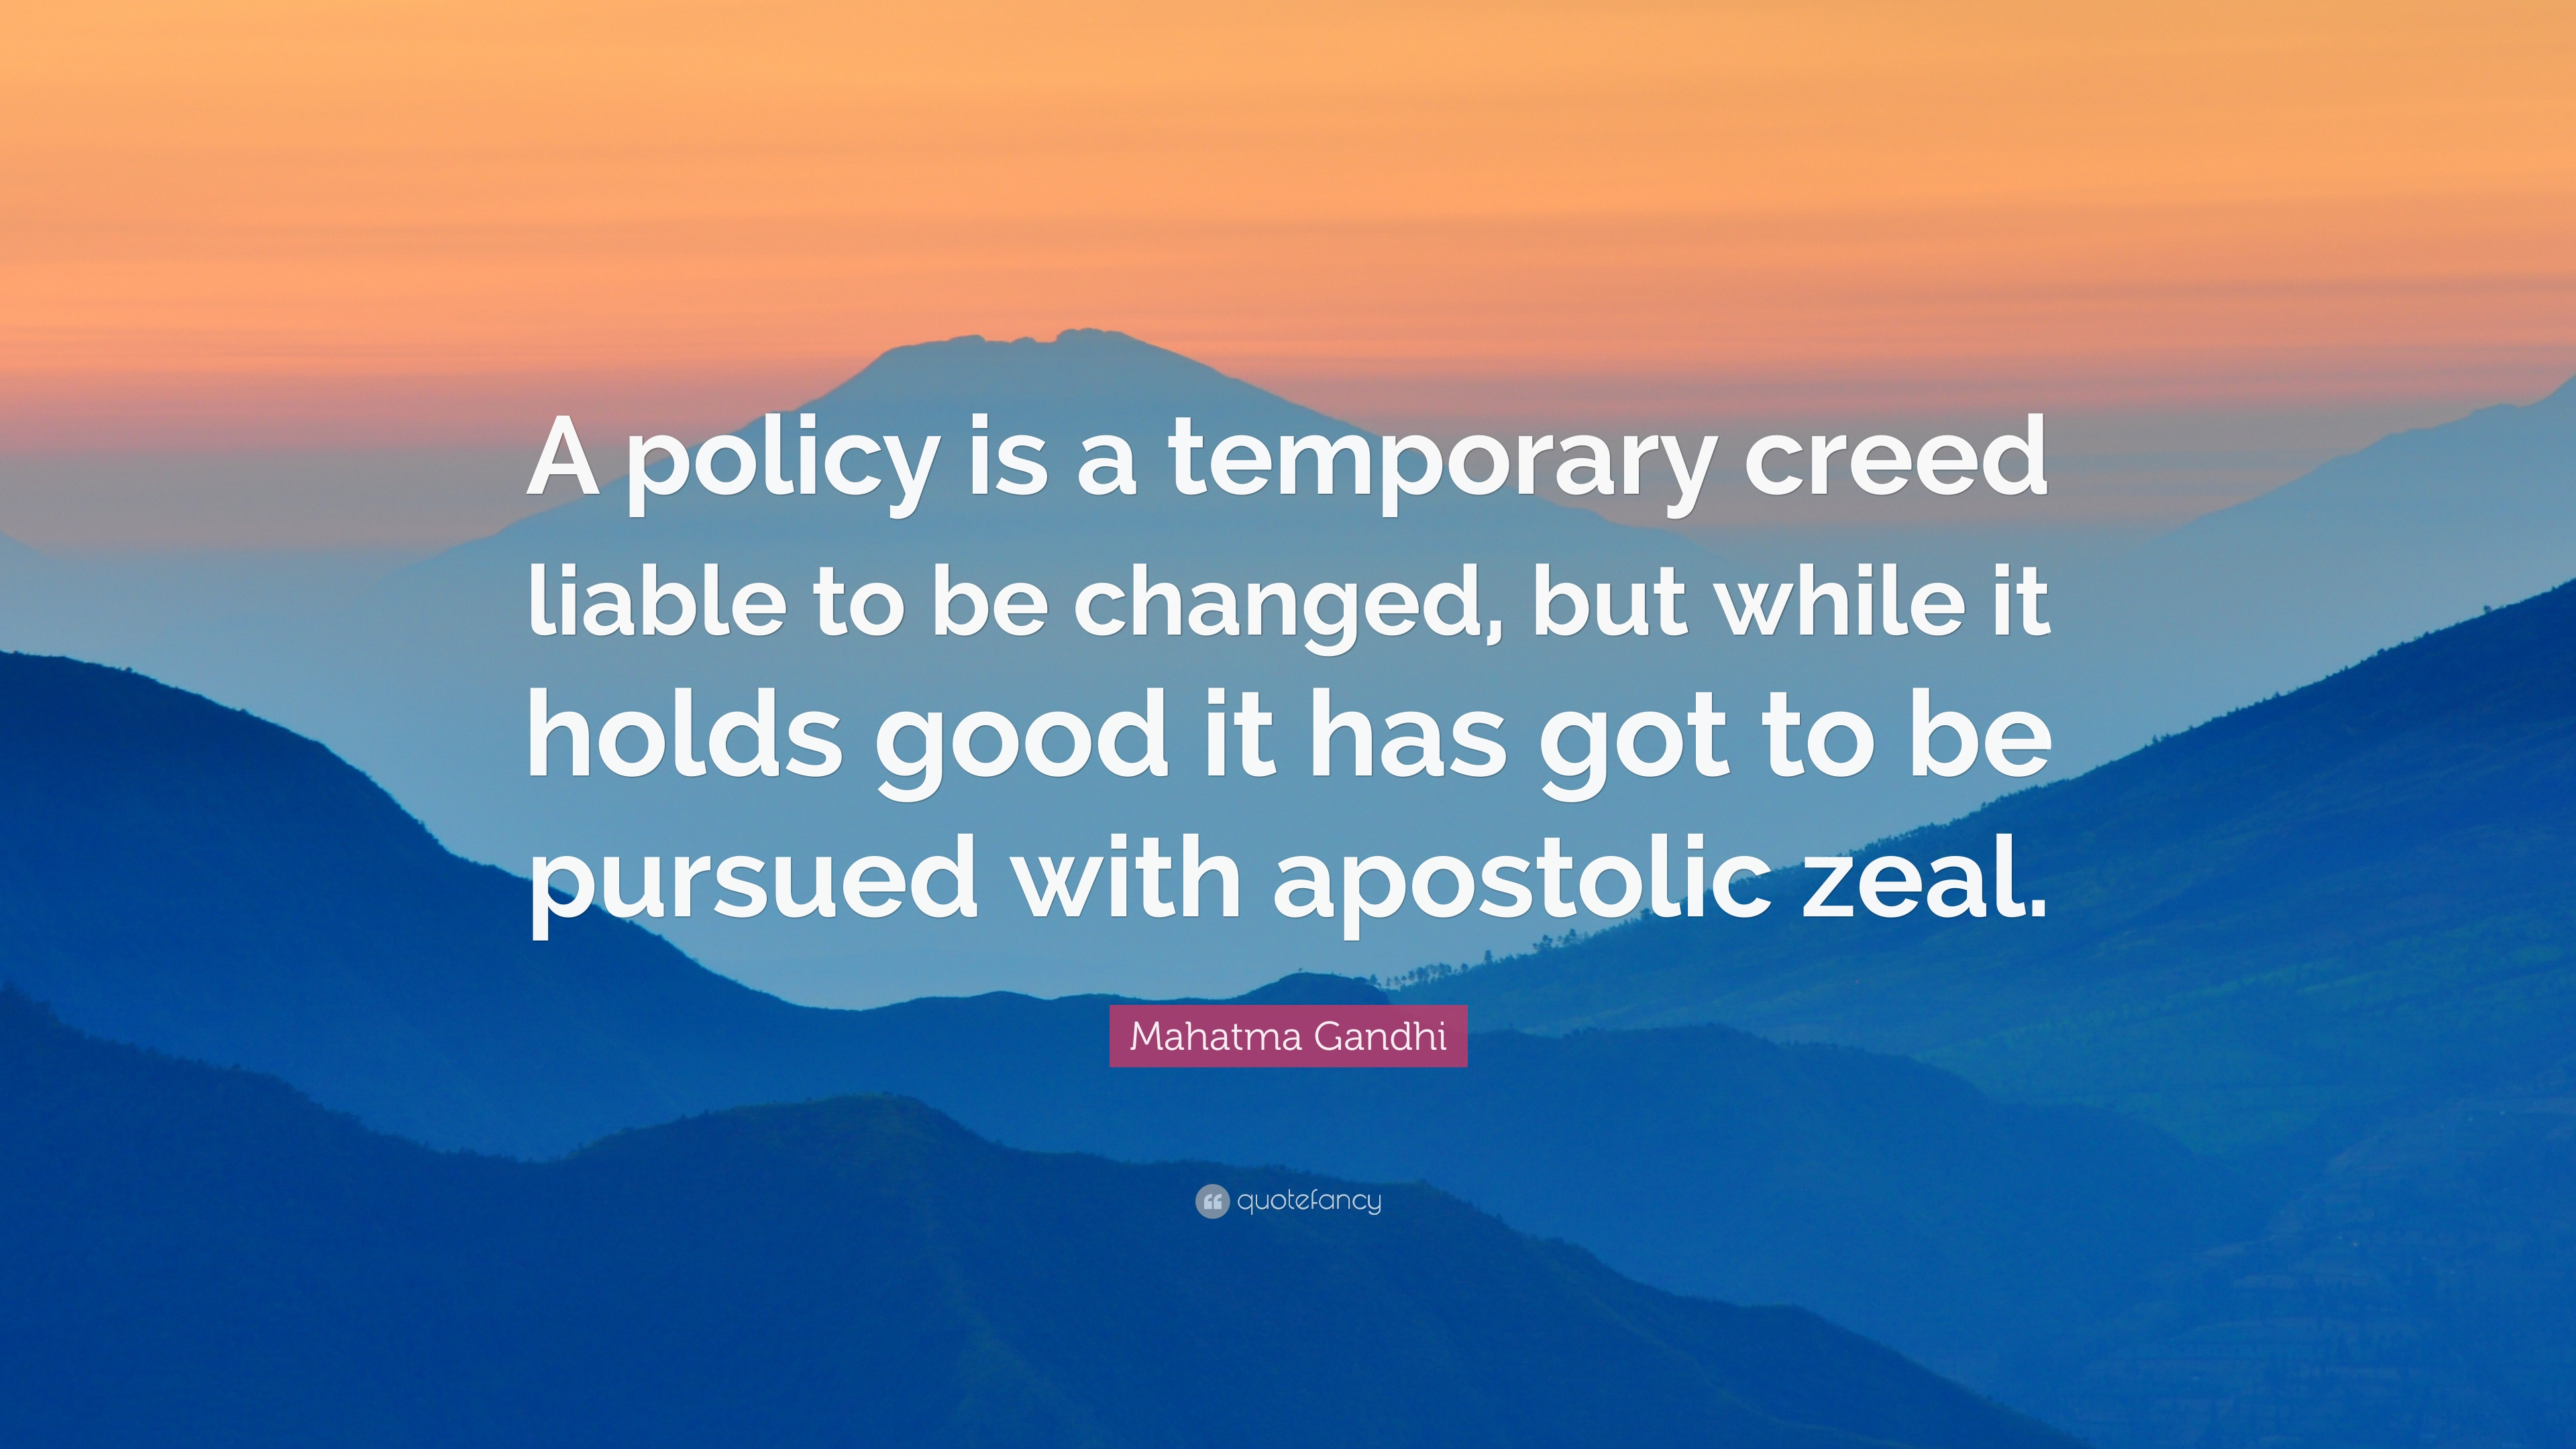 """A policy is a temporary creed liable to be changed, but while it holds good it has got to be pursued with apostolic zeal."" -Mahatma Gandhi [3840×2160]"